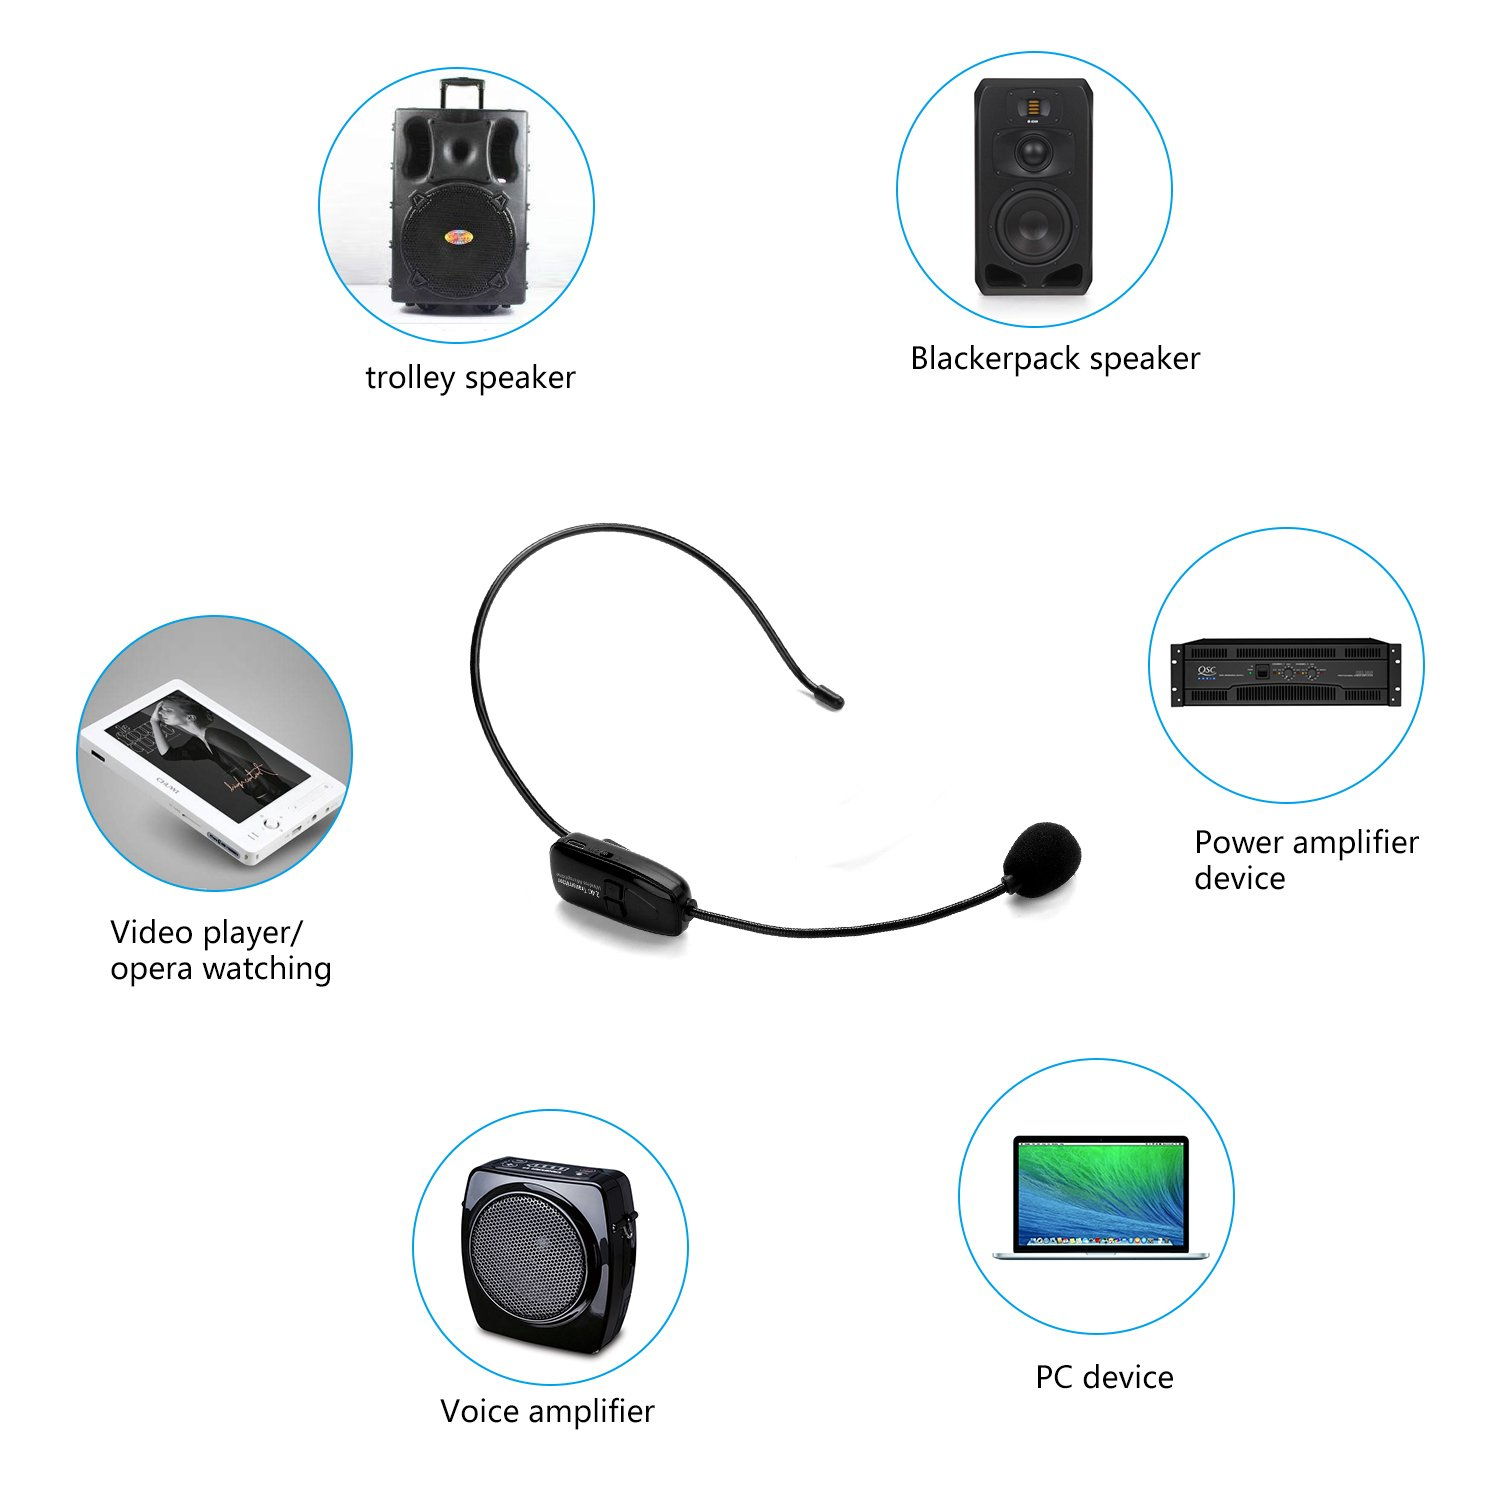 DETAILS. Wireless Microphone Headset acc8c6f53a4c